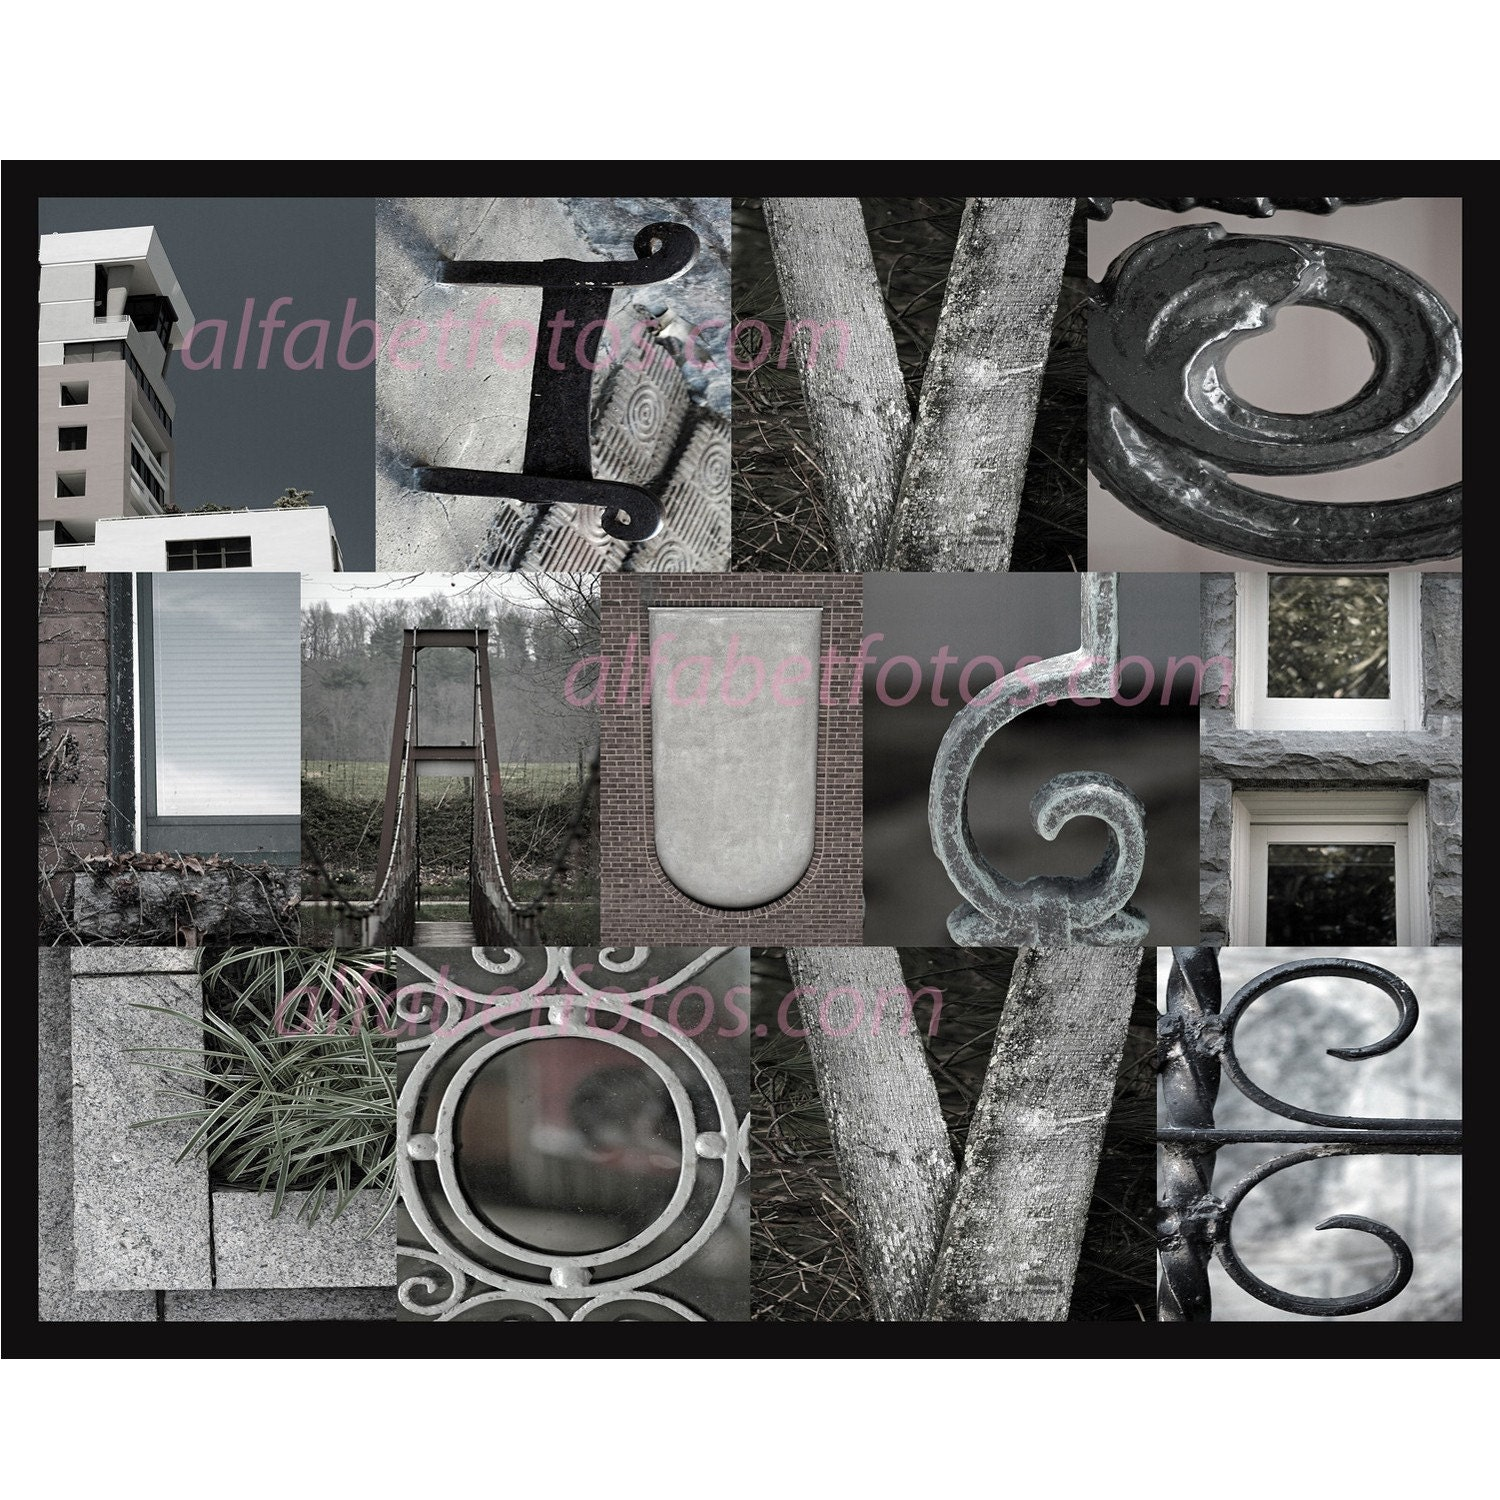 Home Decor Wall Letters : Items similar to alphabet letter photography home decor